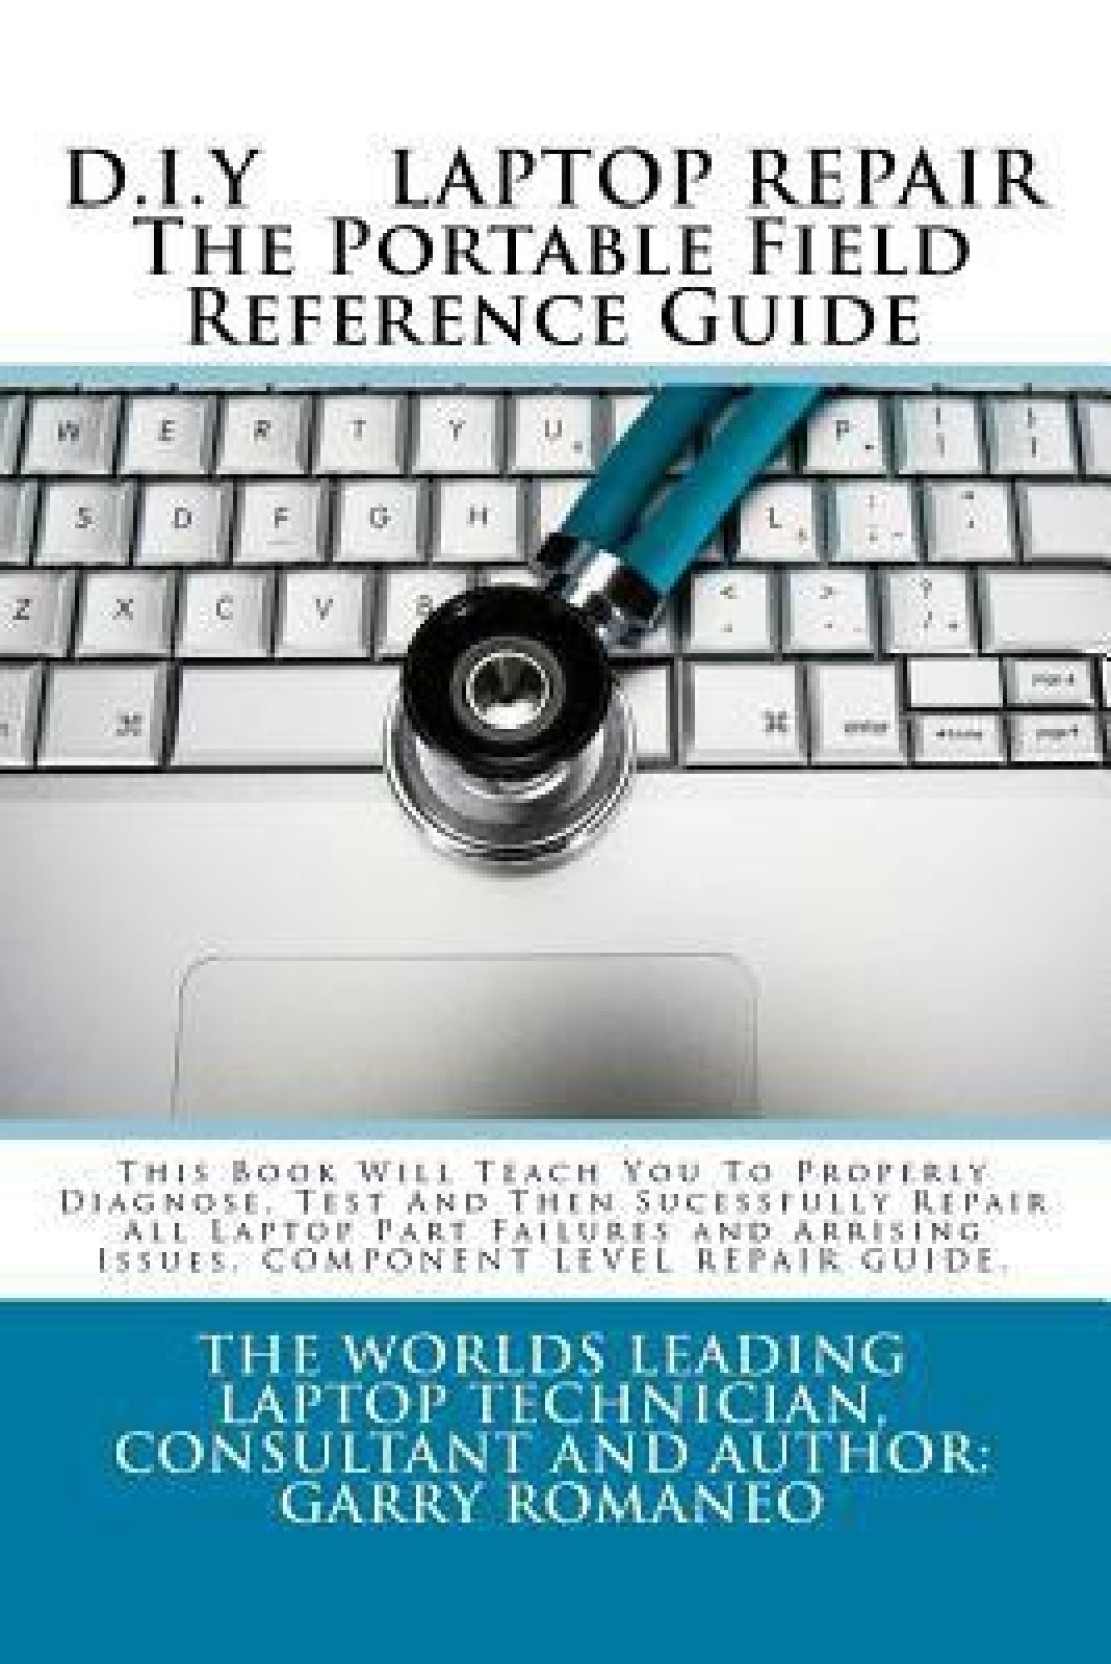 D.I.Y. Laptop Repair the Portable Field Reference Guide. Share